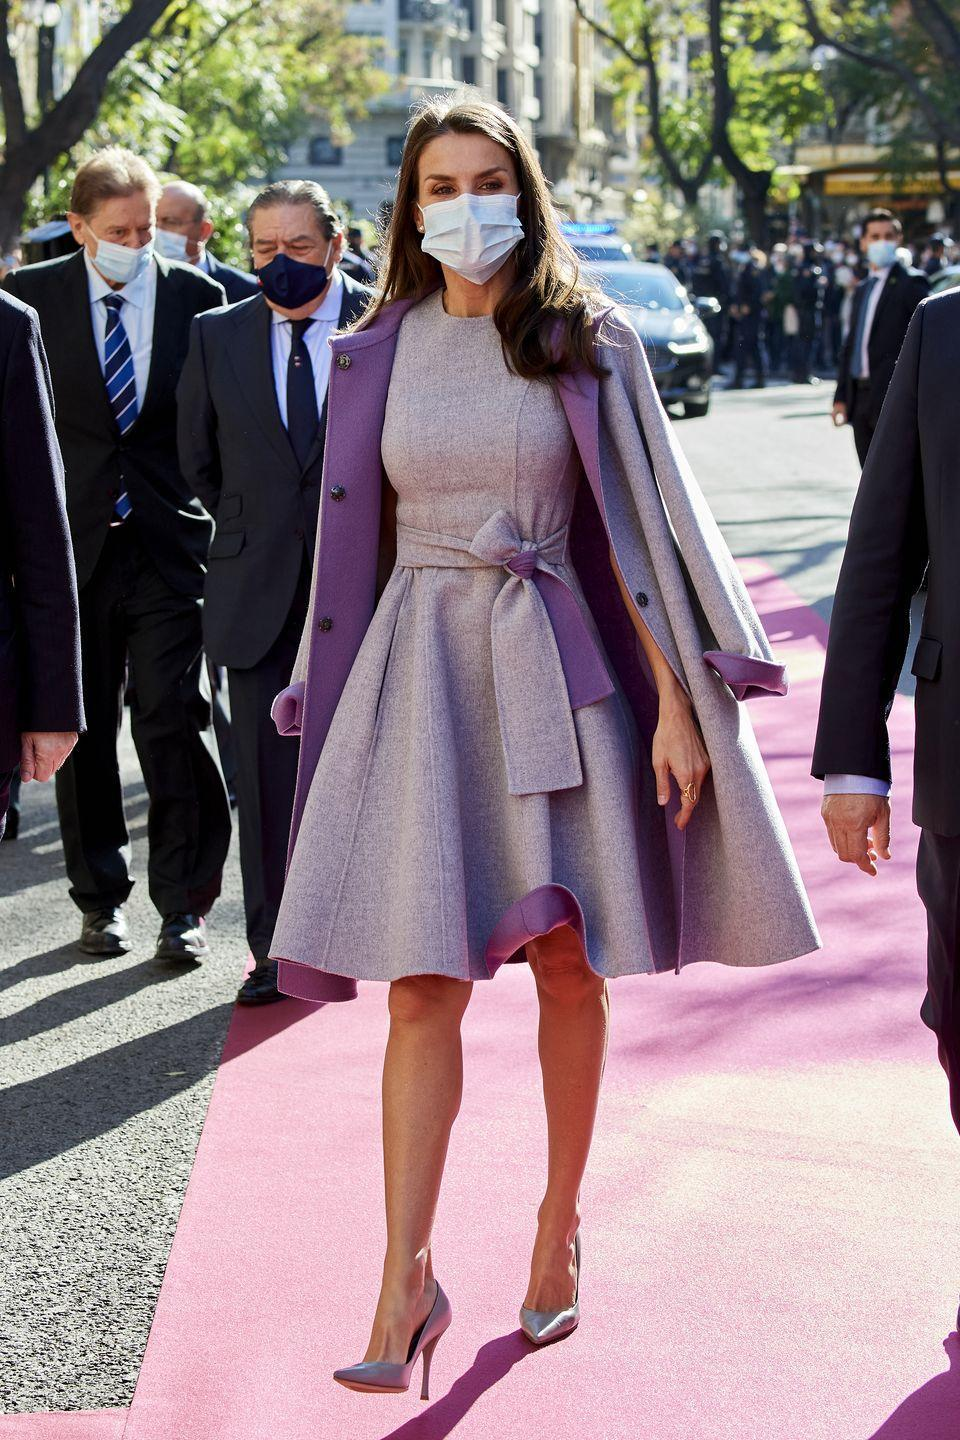 <p><strong>1 December </strong>Queen Letizia stepped out in a tailored grey dress and matching coat with regal purple accents in Valencia. </p>